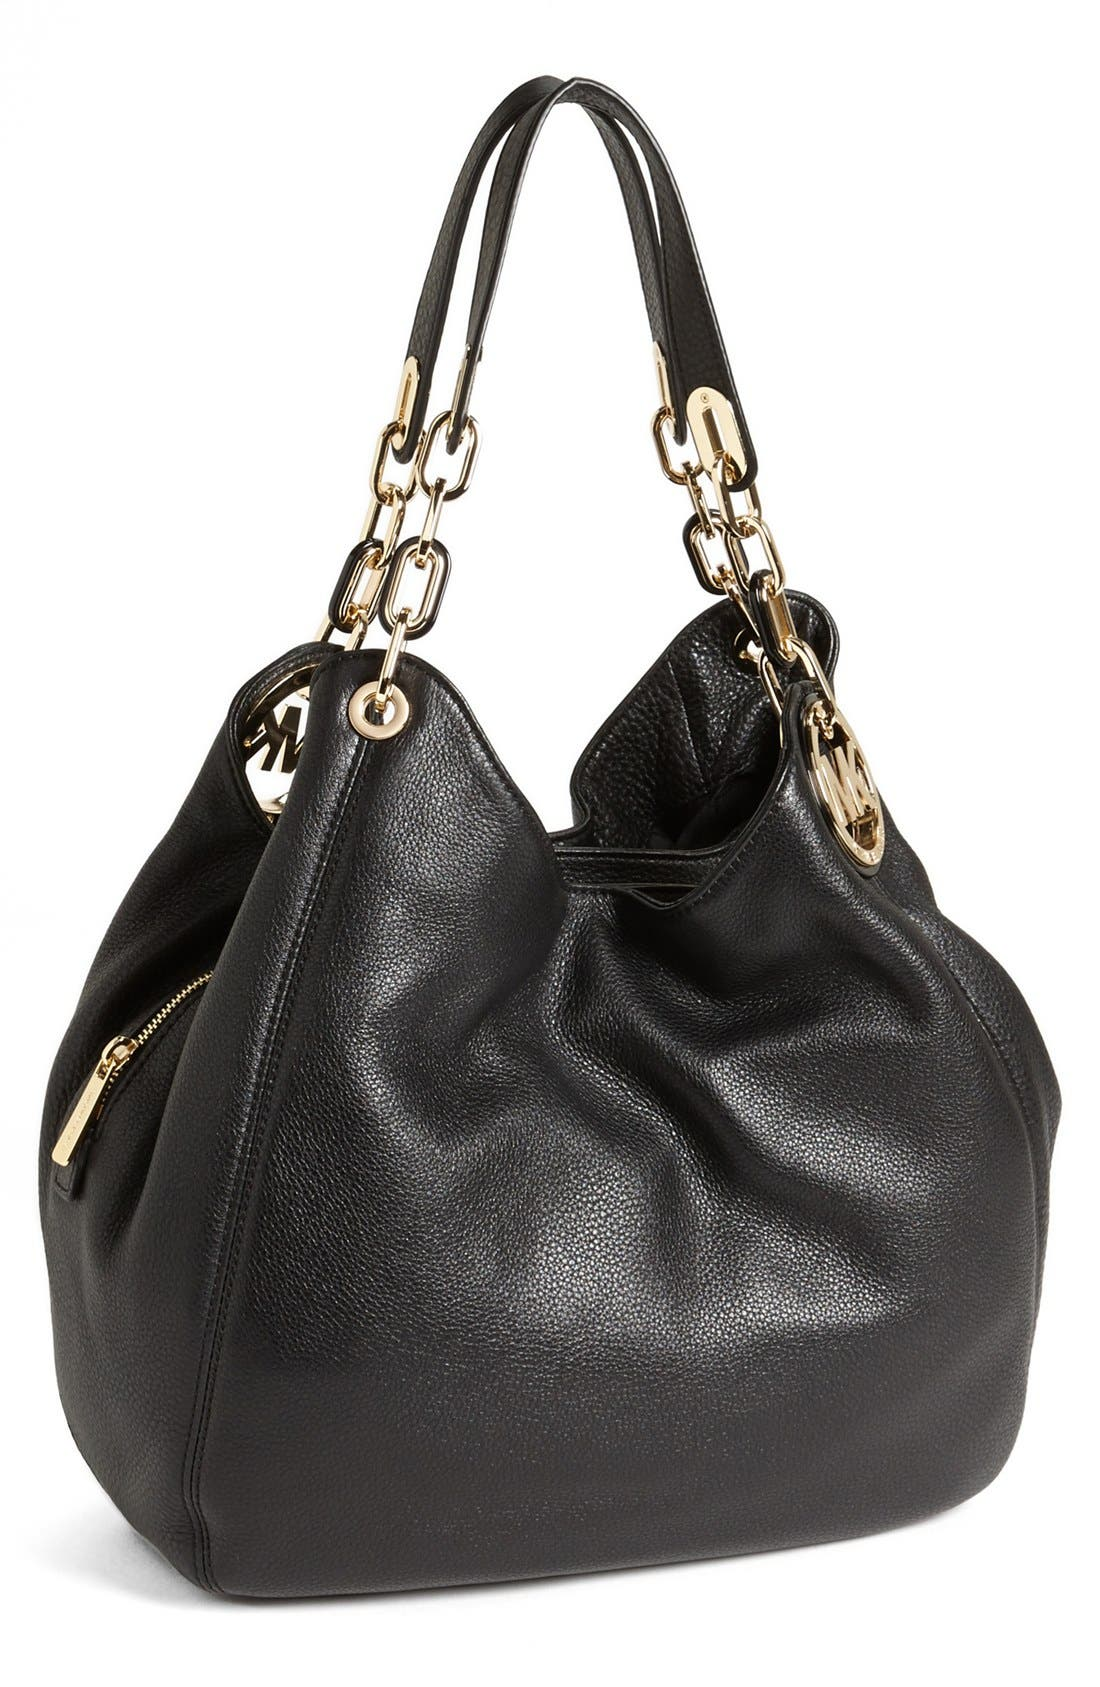 MICHAEL MICHAEL KORS,                             'Fulton - Large' Tote,                             Main thumbnail 1, color,                             001